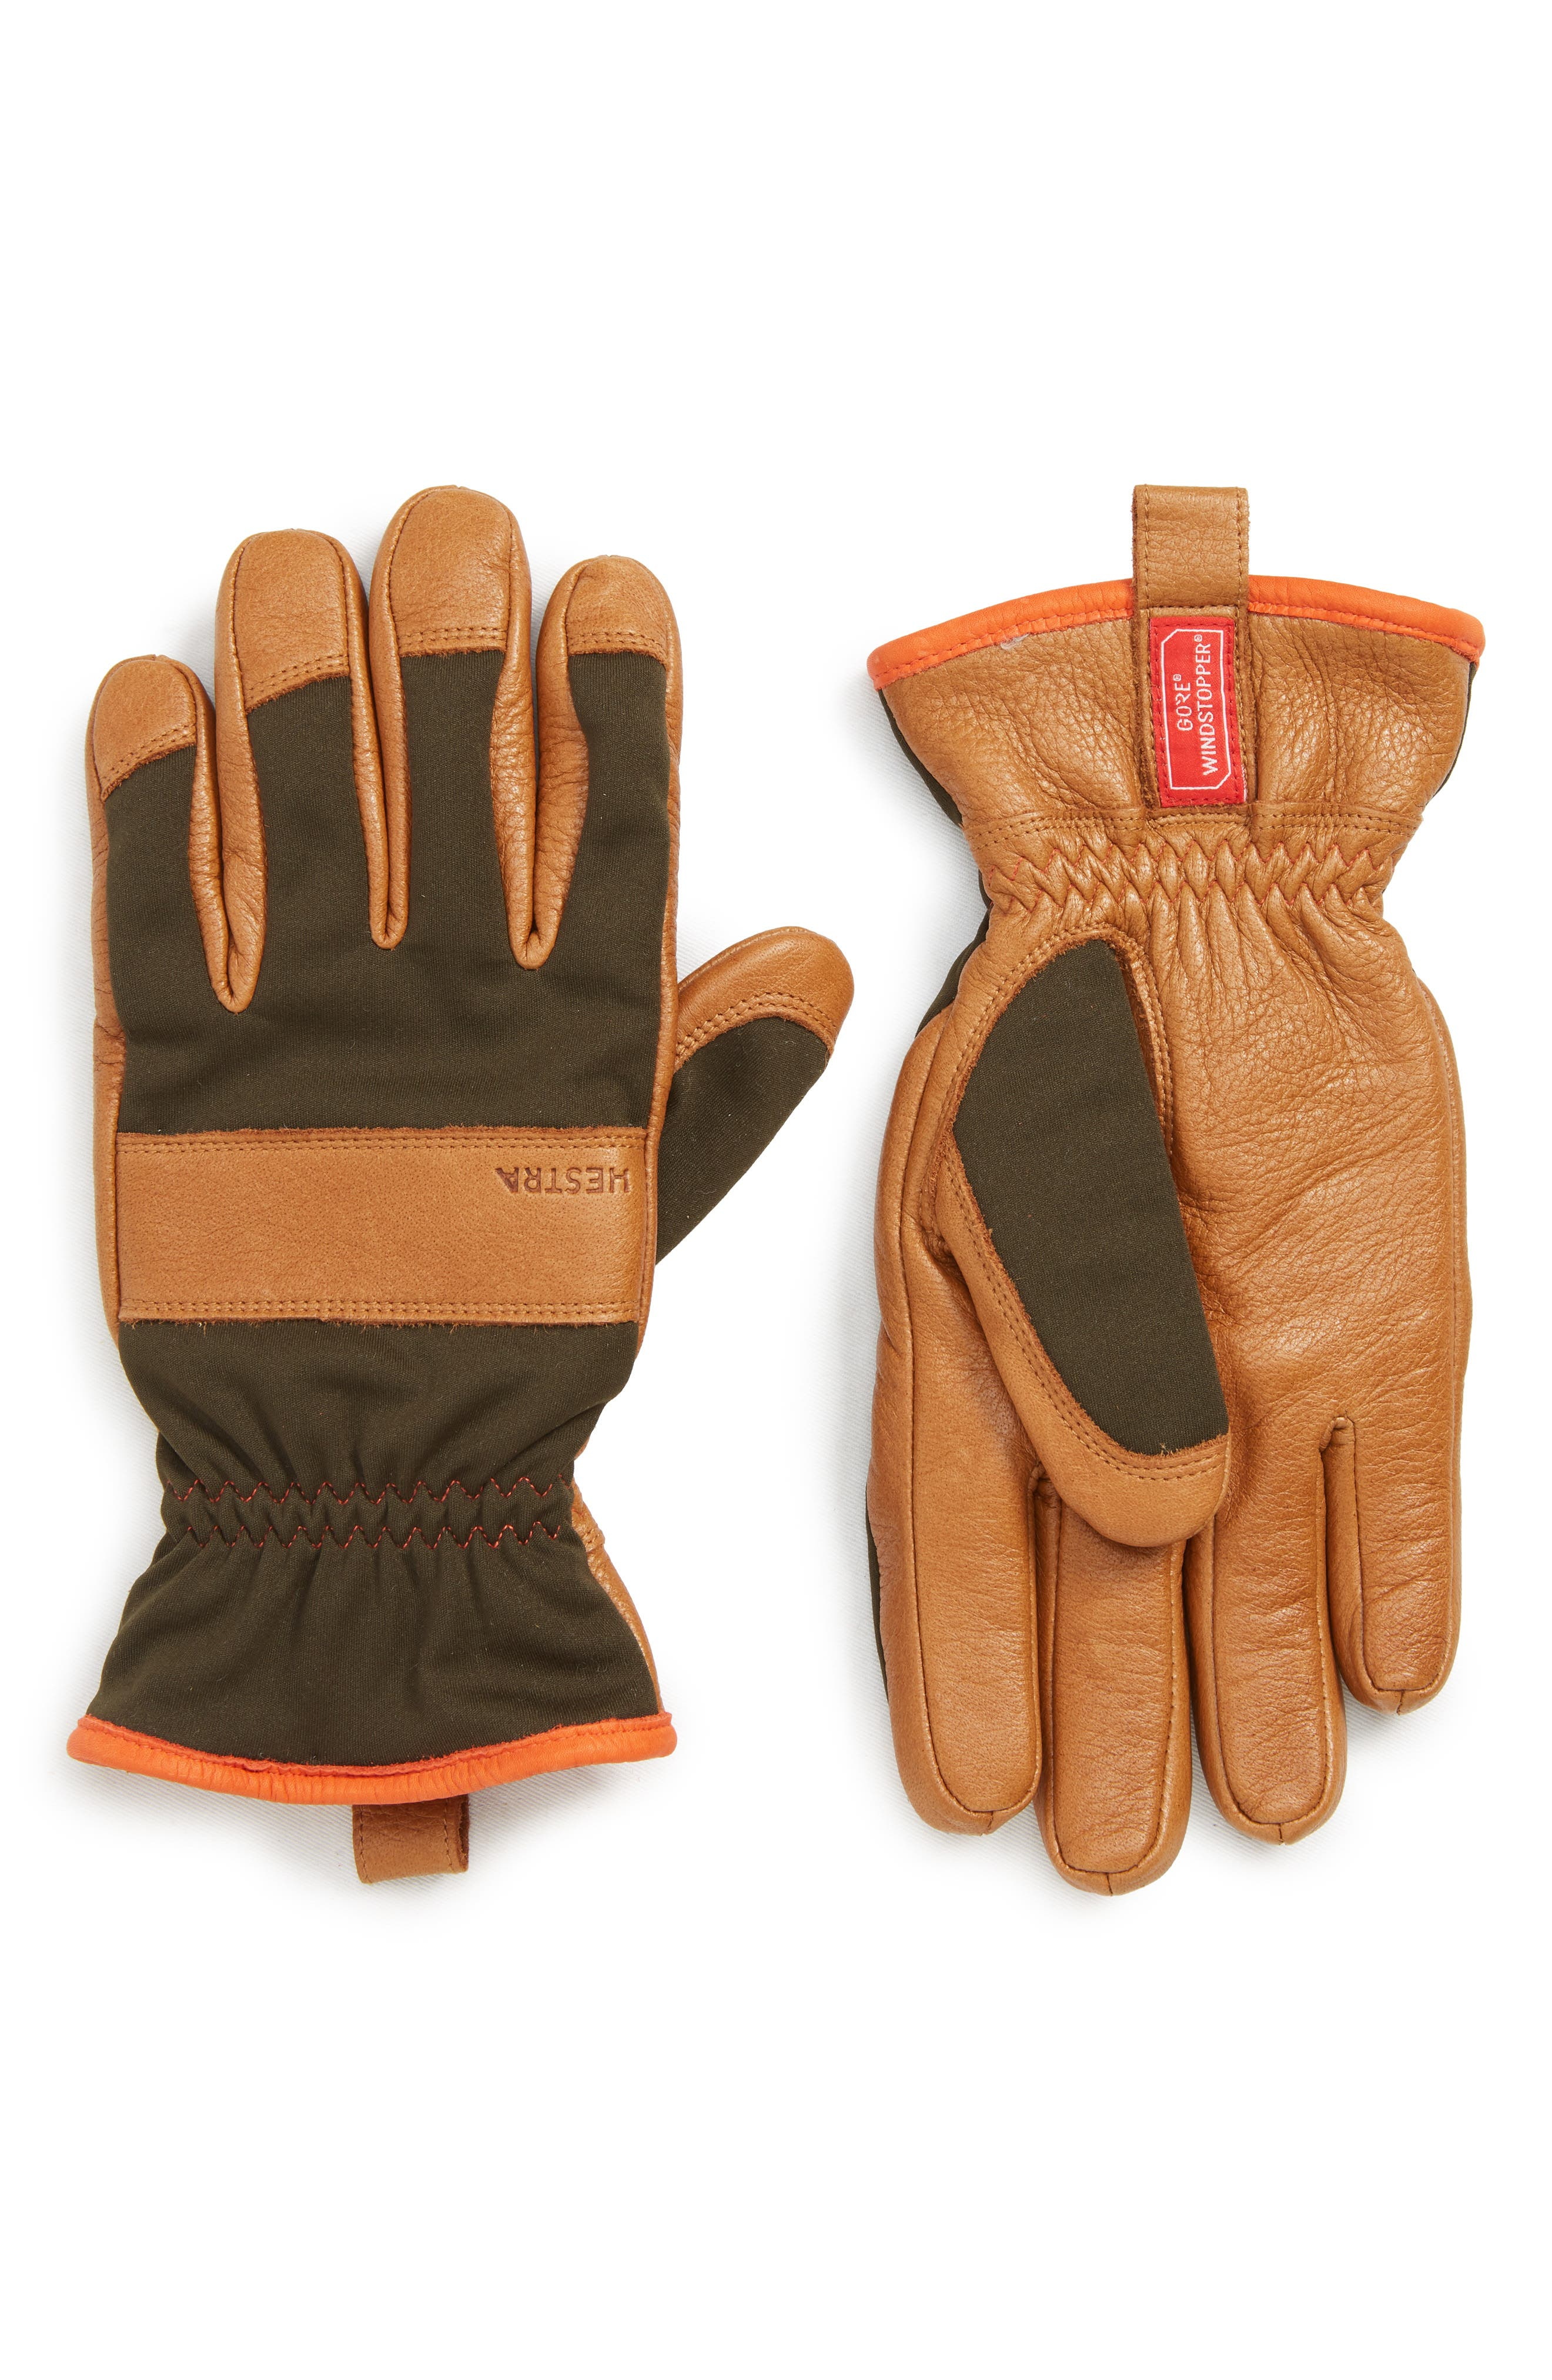 'Tor' Leather Gloves,                         Main,                         color, DARK FOREST/ NATURAL YELLOW